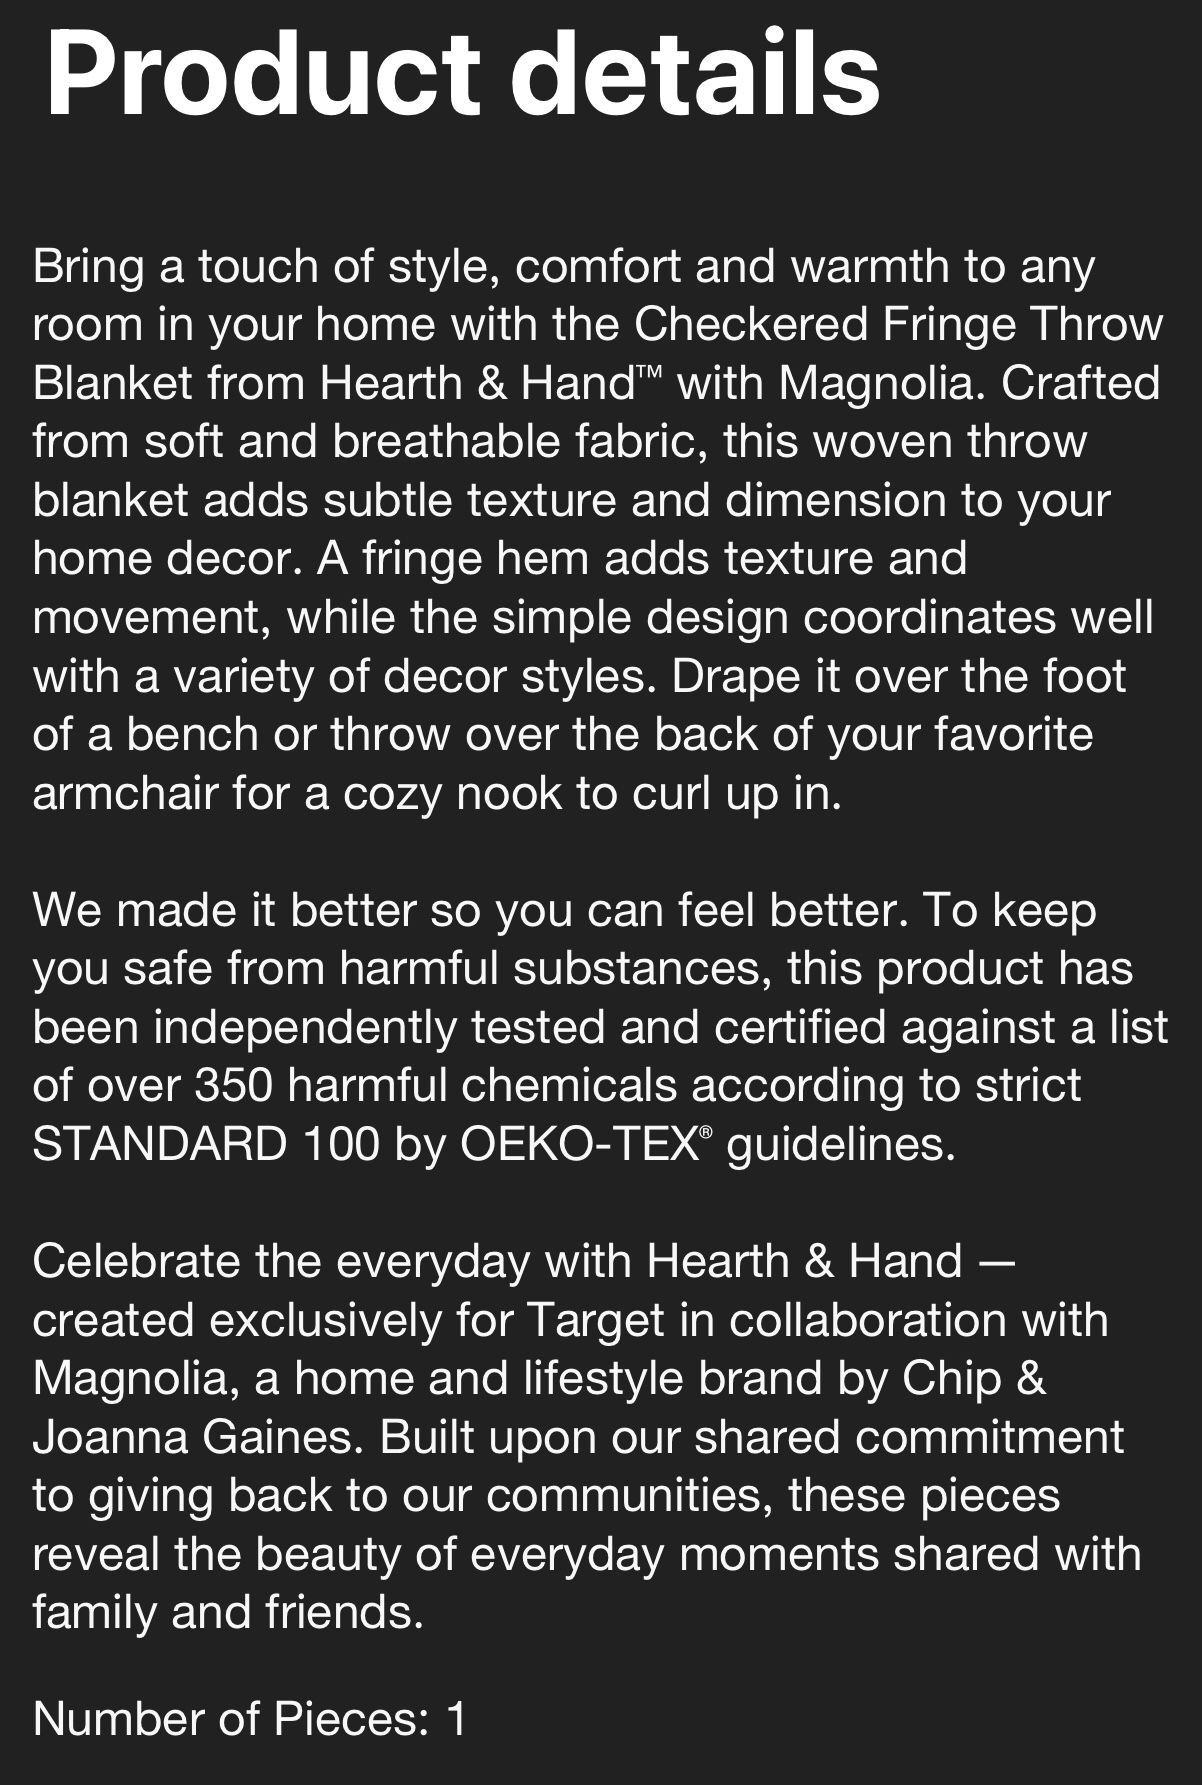 Checkered Fringe Throw Blanket Gray/Sour Cream -Hearth &  Hand  With Magnolia